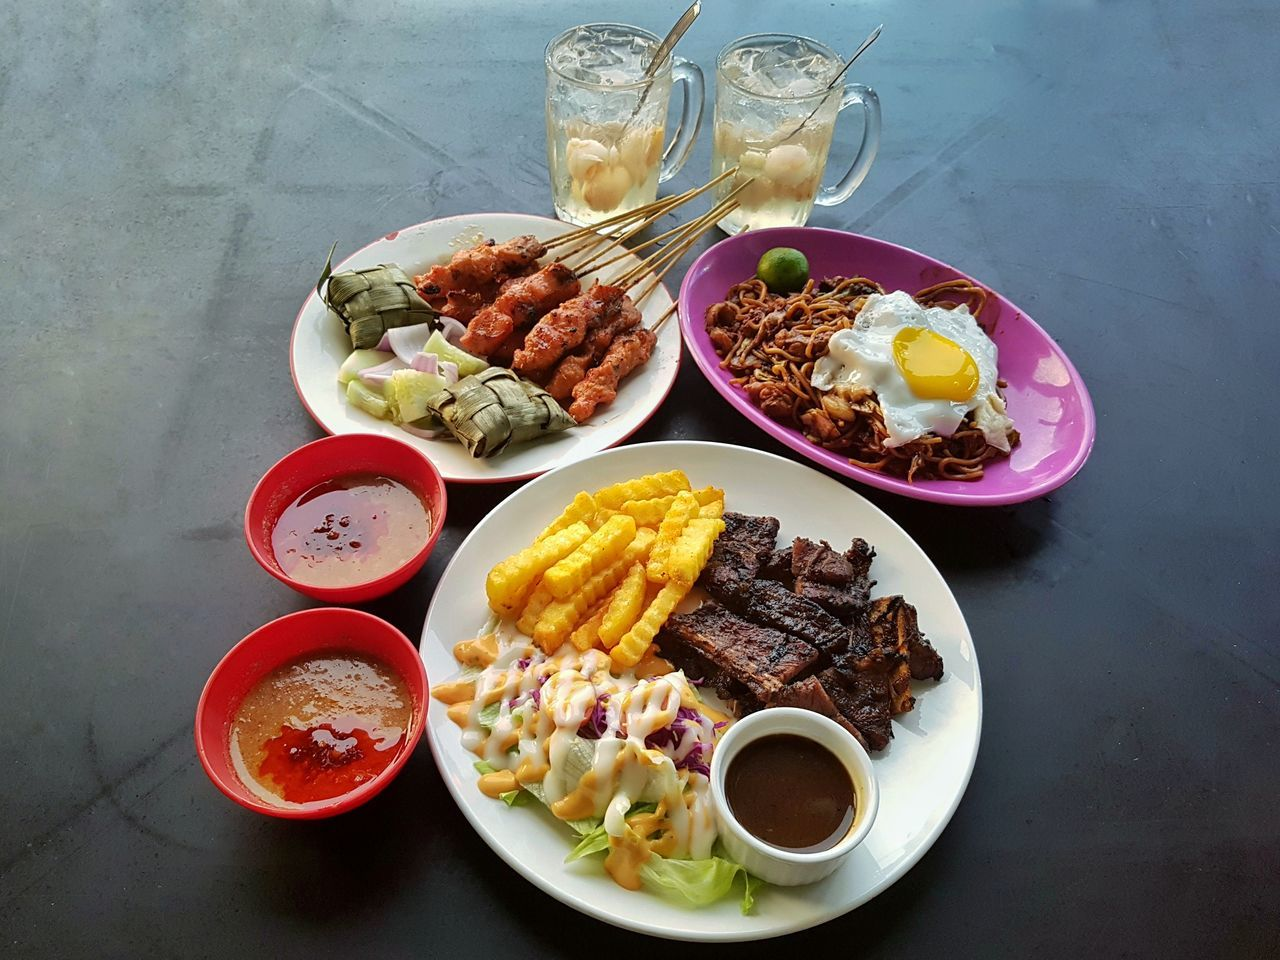 plate, food and drink, food, ready-to-eat, freshness, serving size, high angle view, bowl, no people, table, salad, meat, indoors, spring roll, healthy eating, dip, day